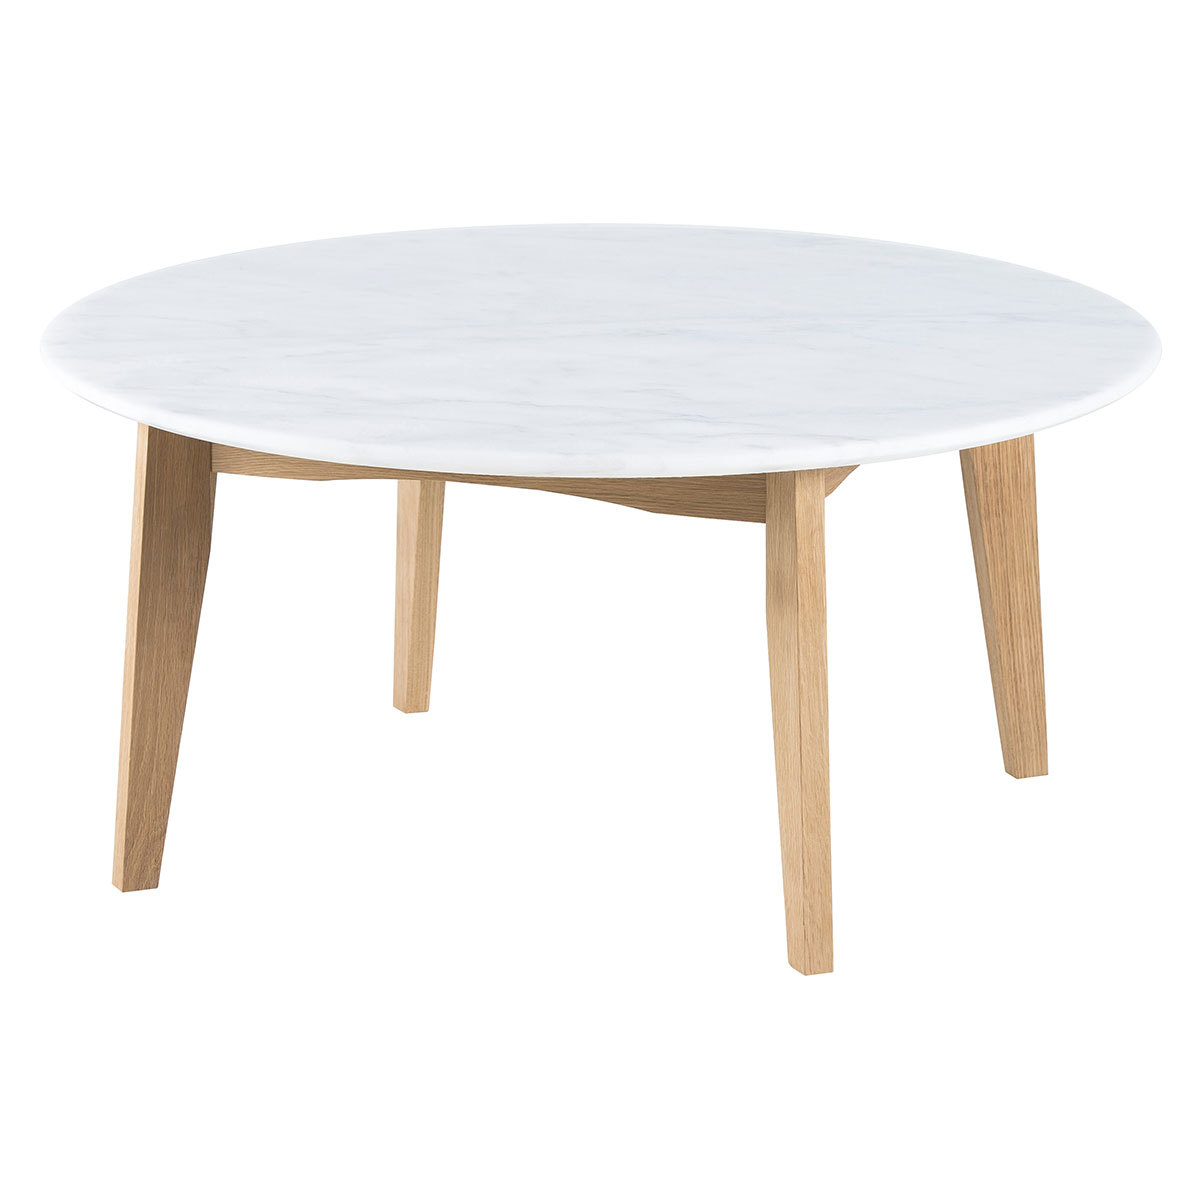 Table Ronde 90 Cm Table Ronde 90 Cm Diametre Topiwall